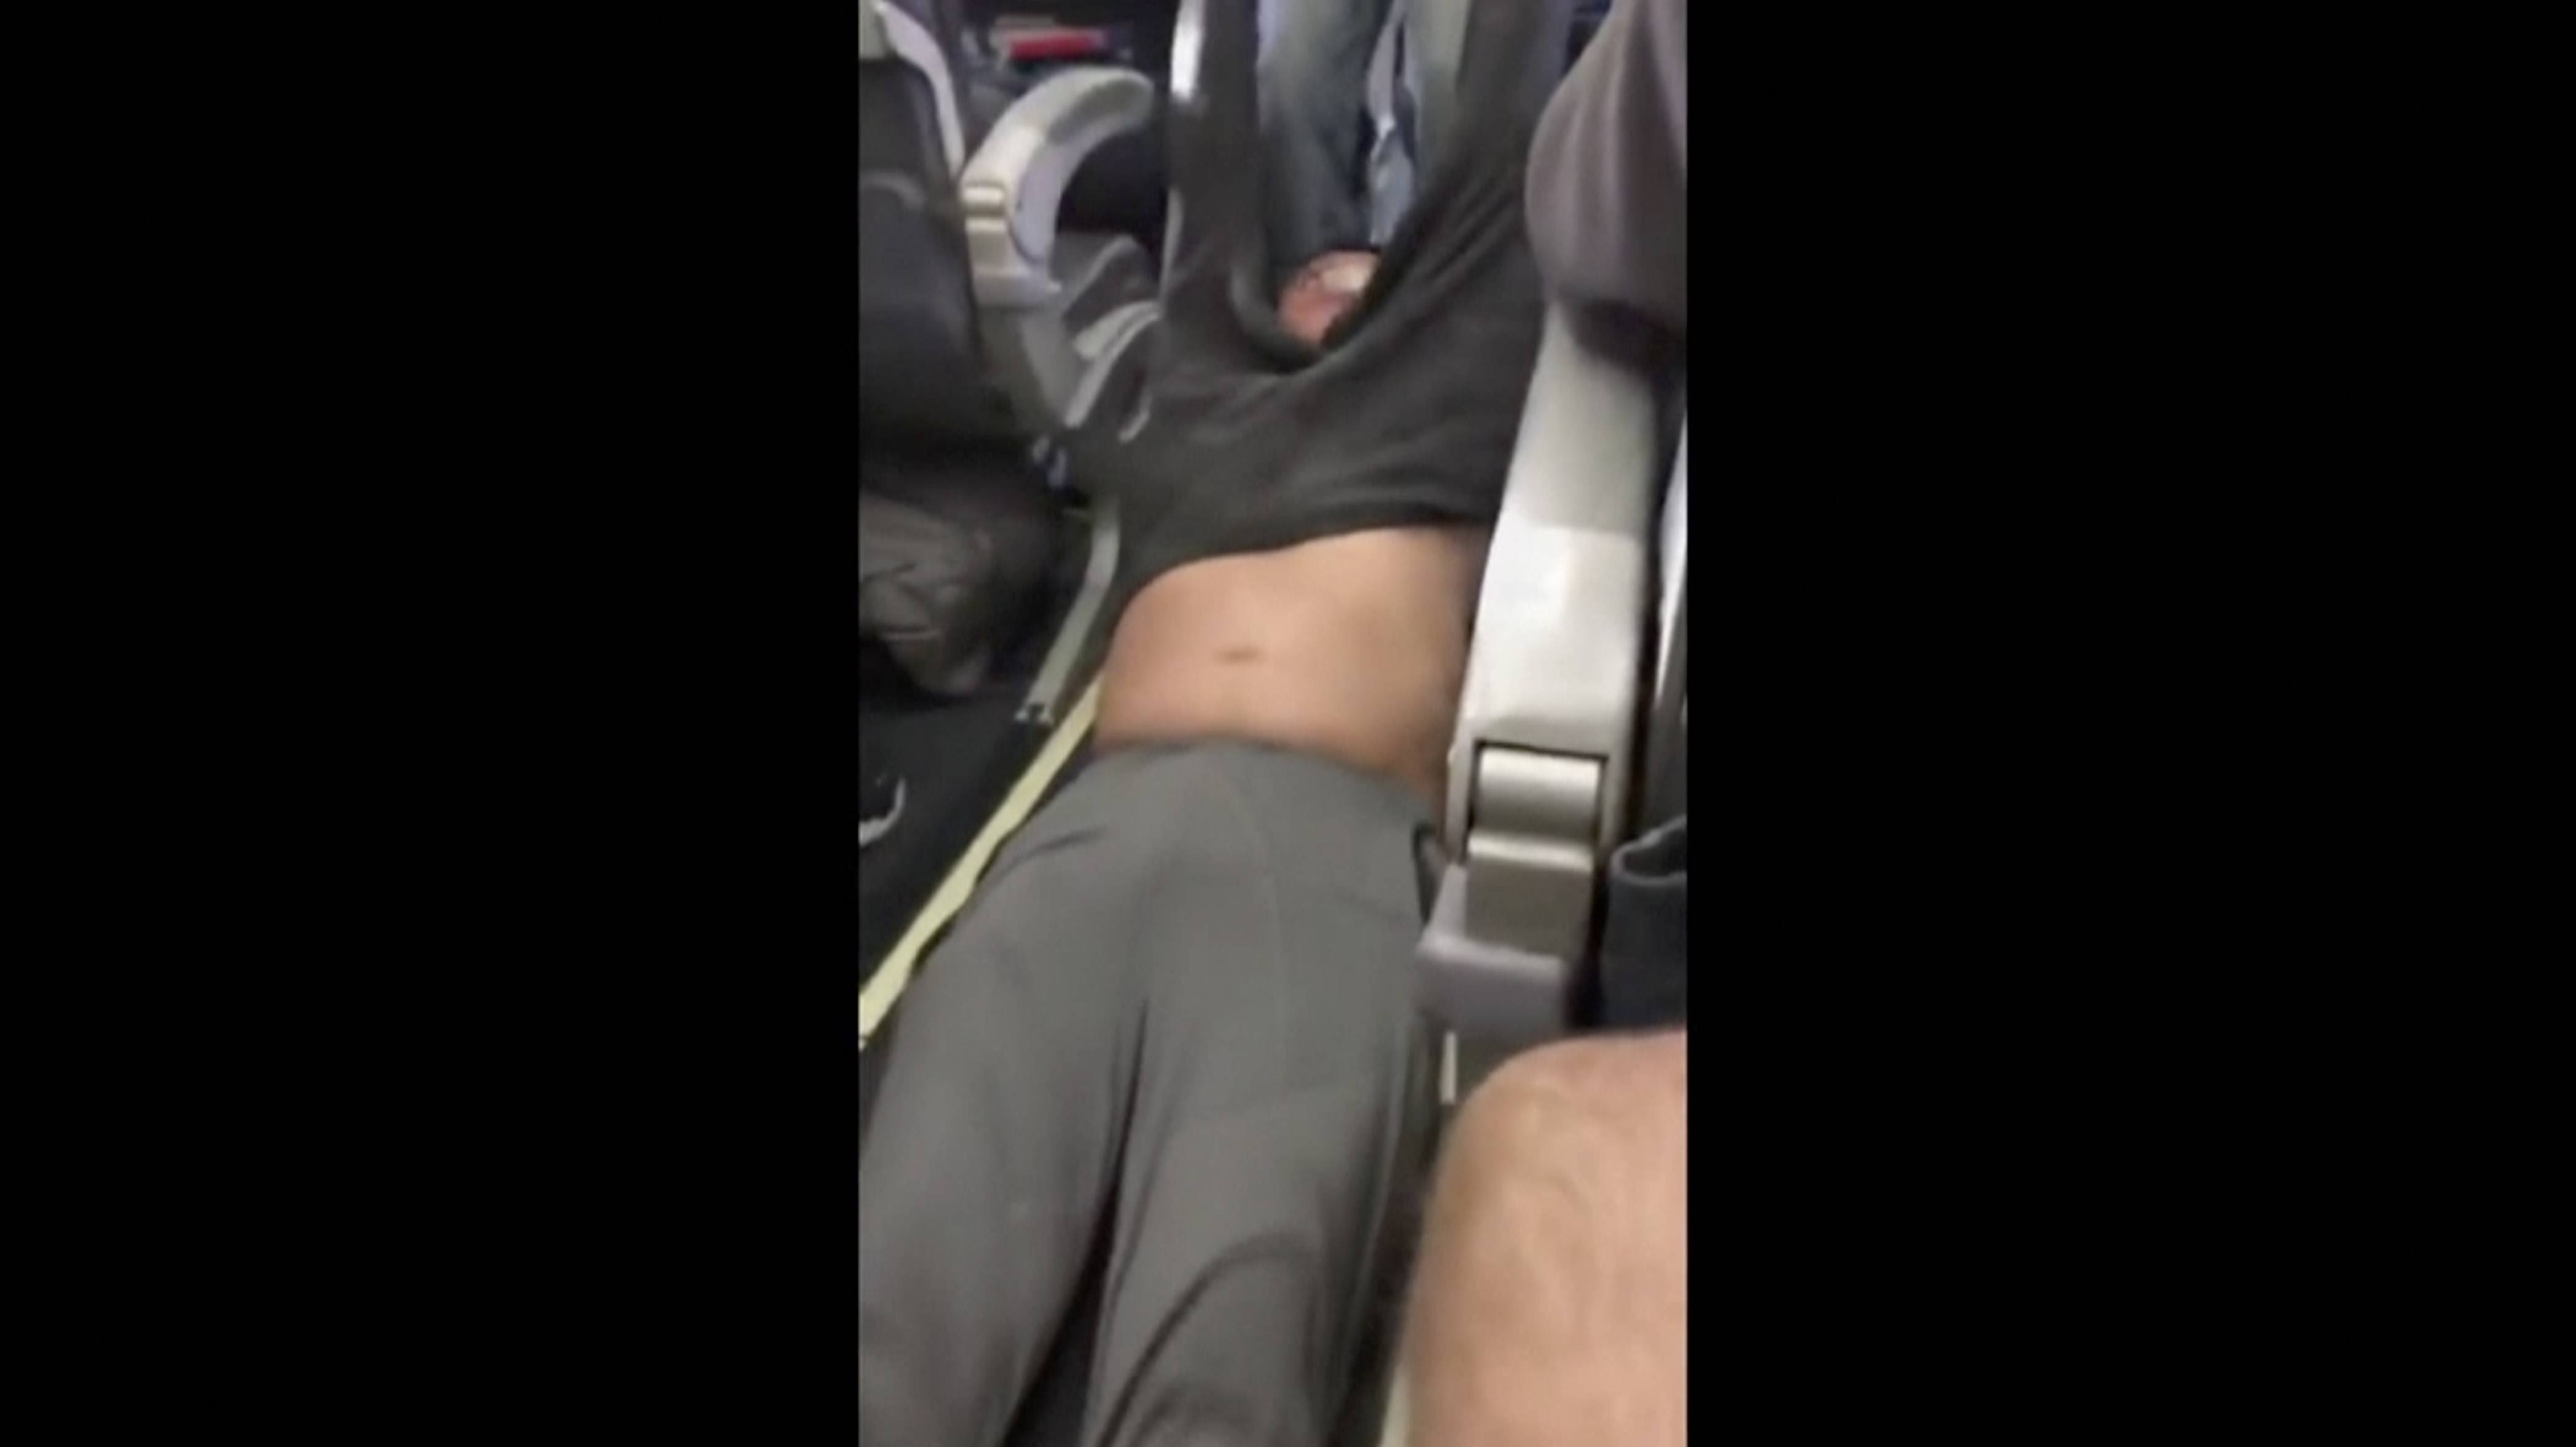 An image from a video provided by United Airlines passenger Audra D. Bridges shows a passenger being dragged from a United flight in Chicago.